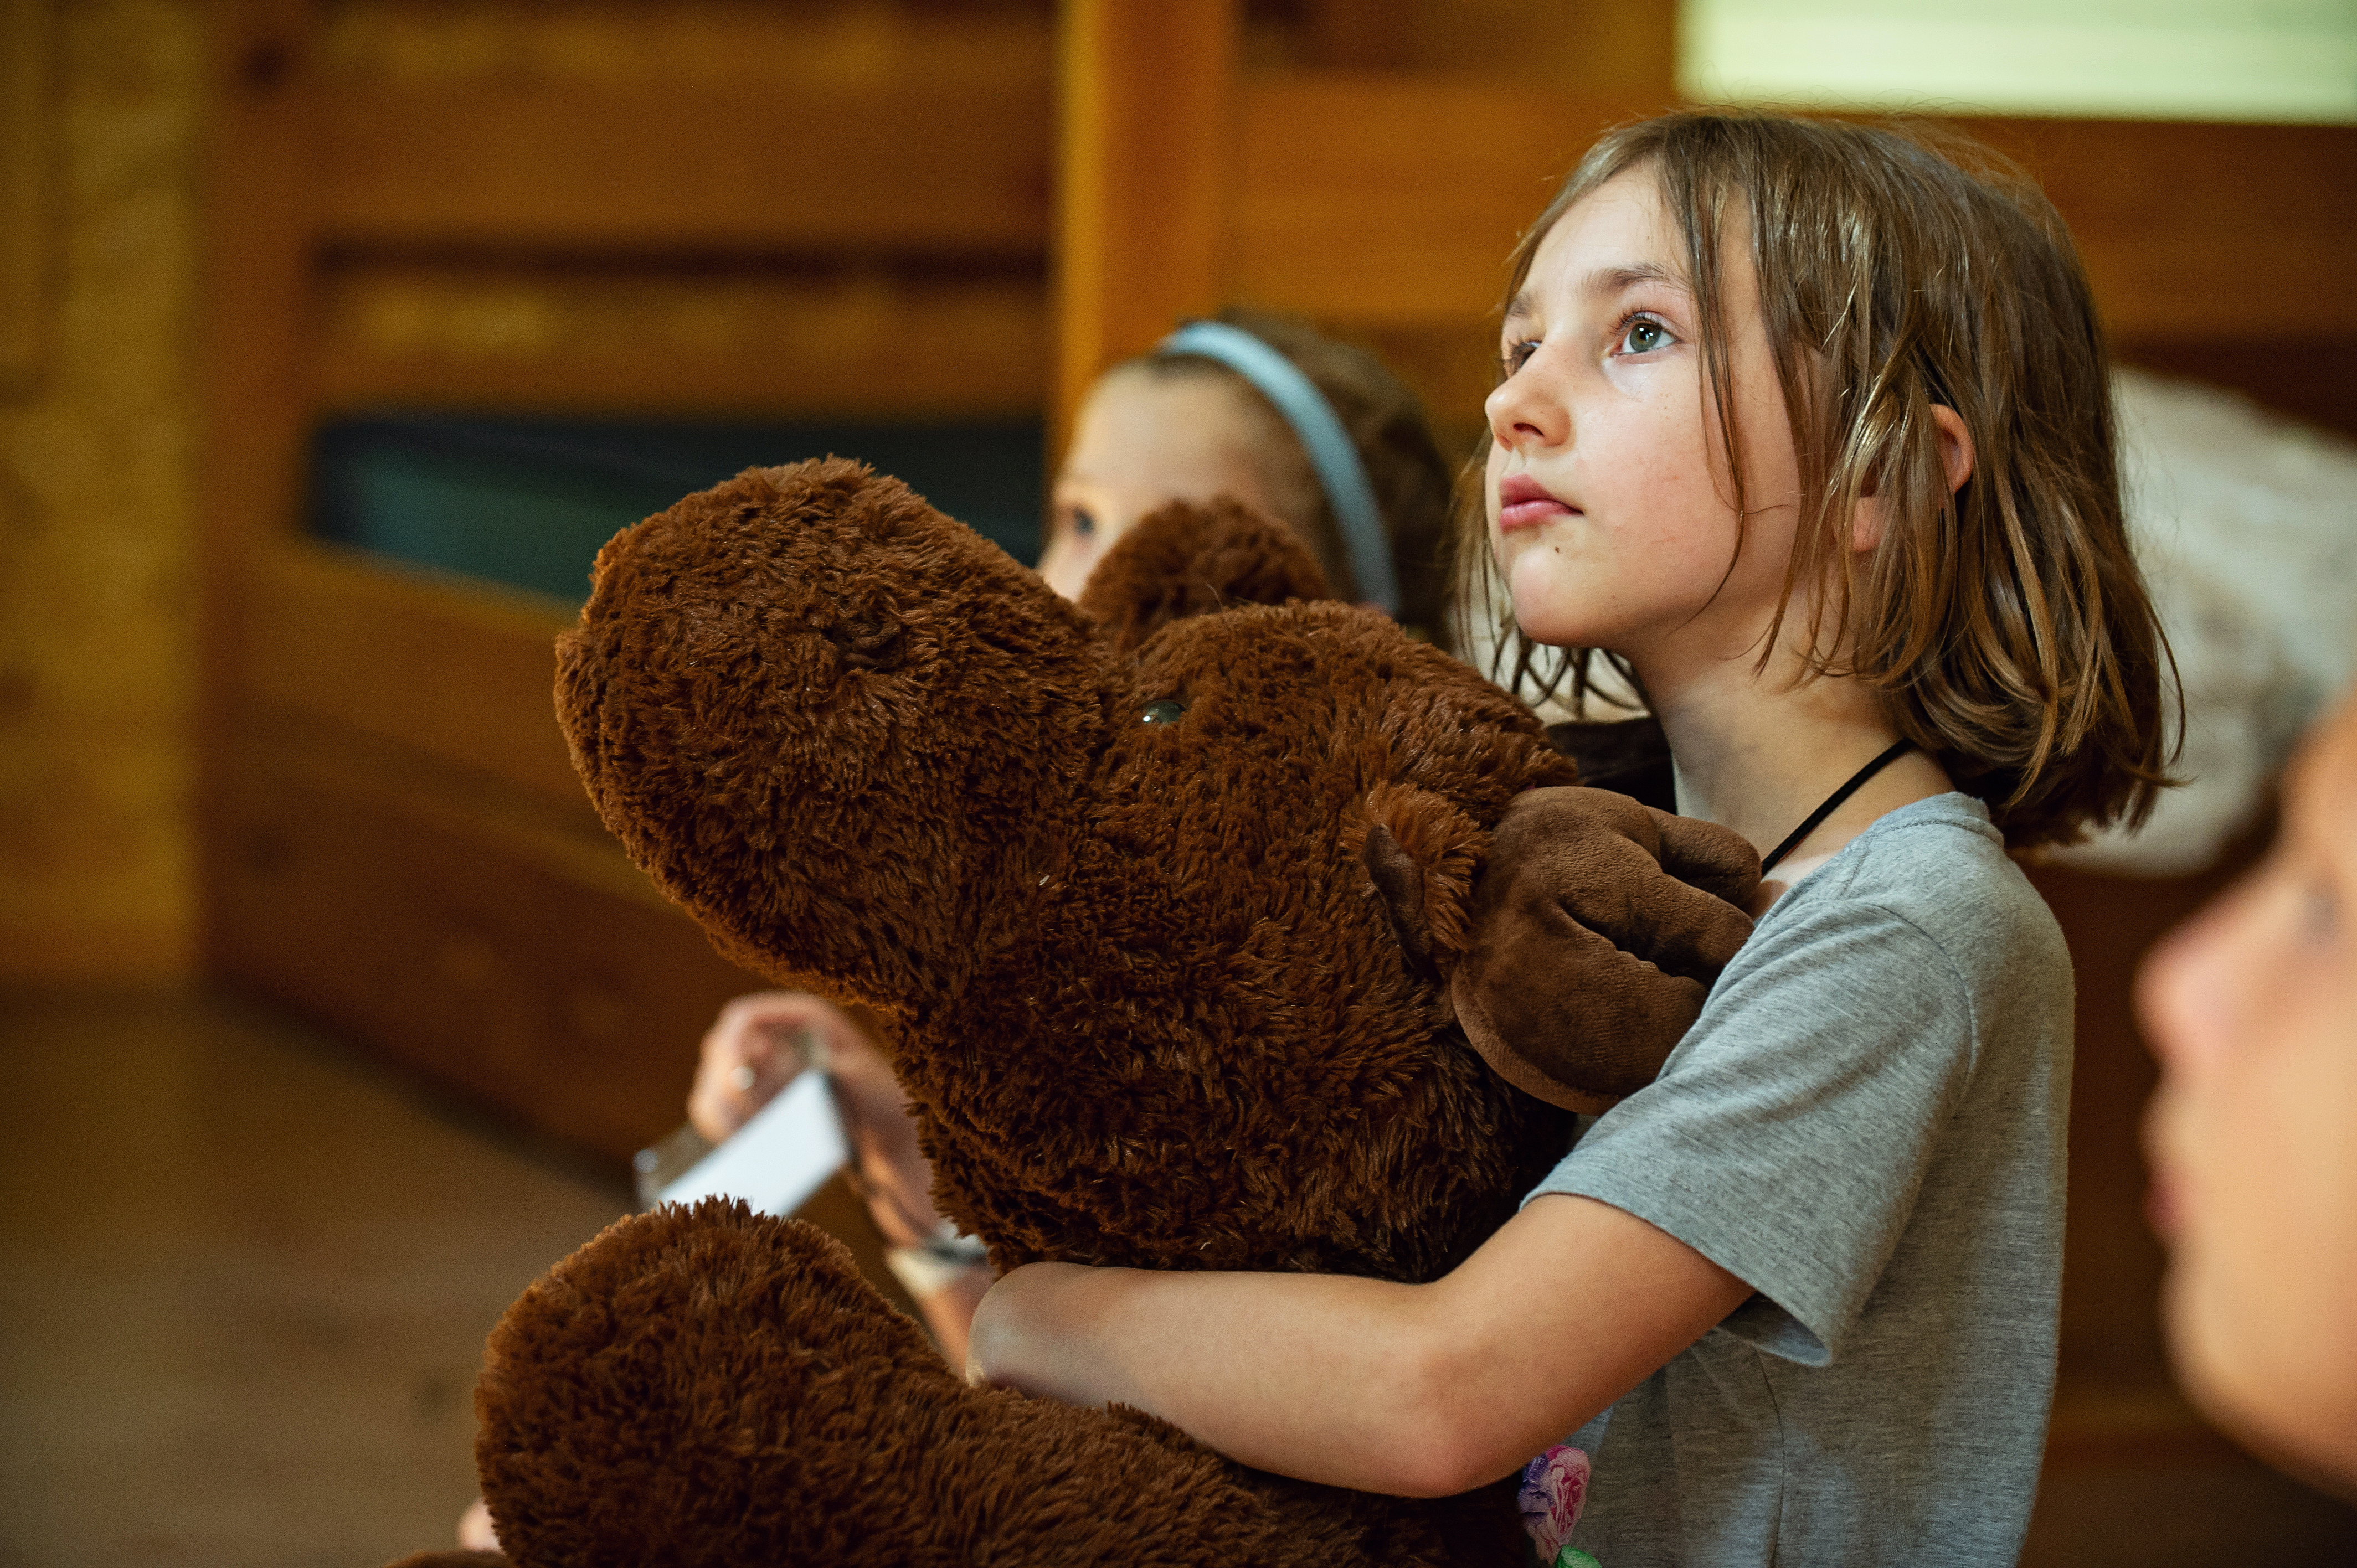 A camper hugging a giant teddy bear listening intently during Cabin Chat